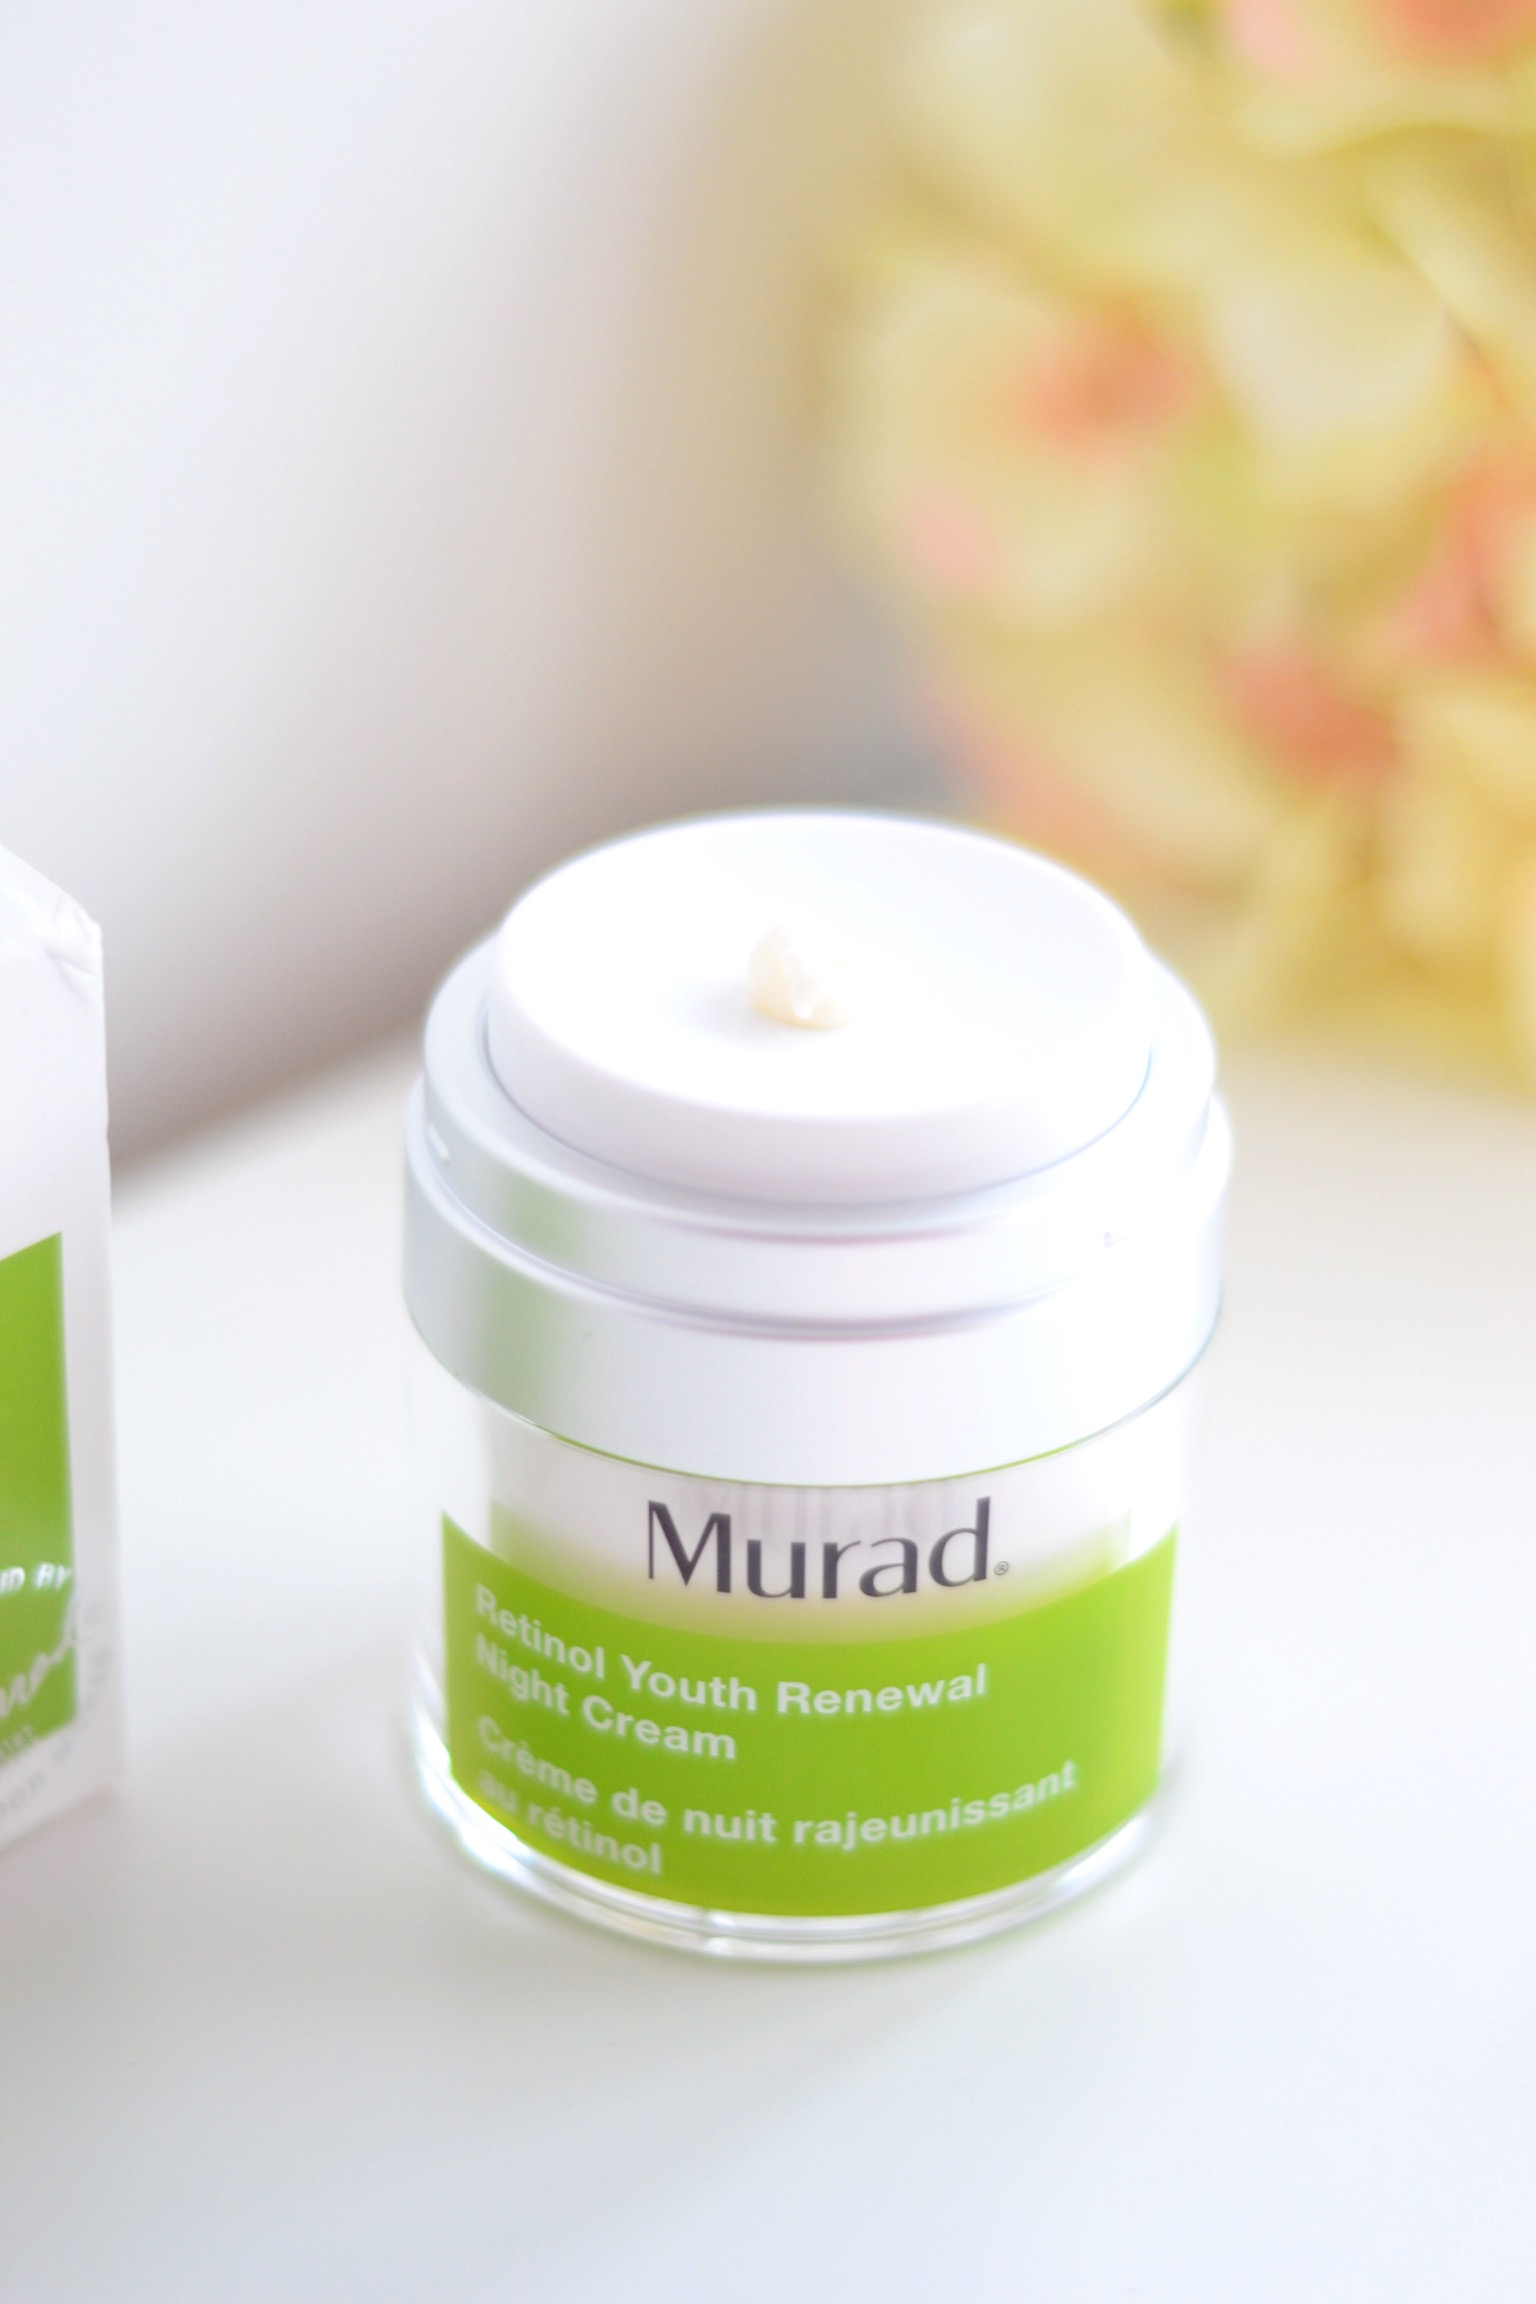 murad-retinol-youth-renewal-night-cream-beauty-review